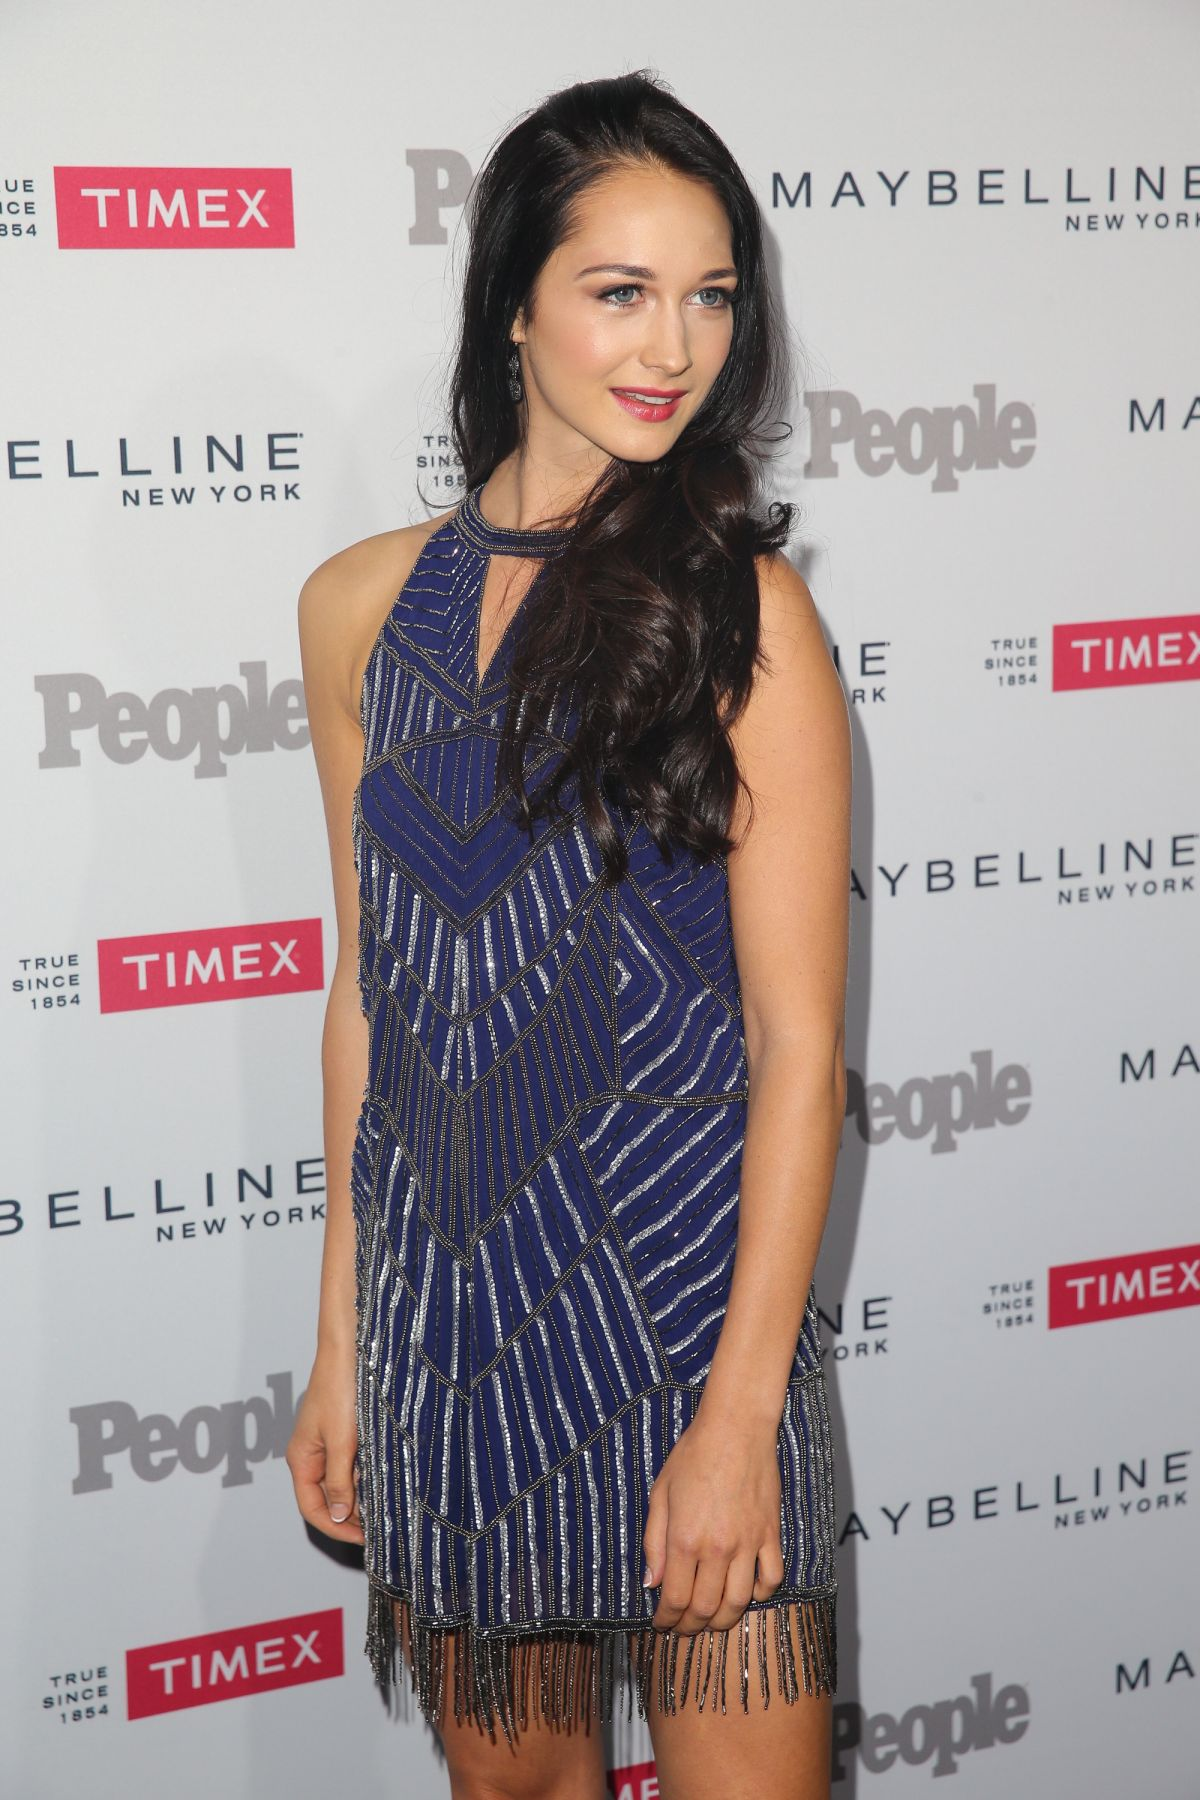 HANNAH JAMES at People's To Watch in West Hollywood 09/16/2015